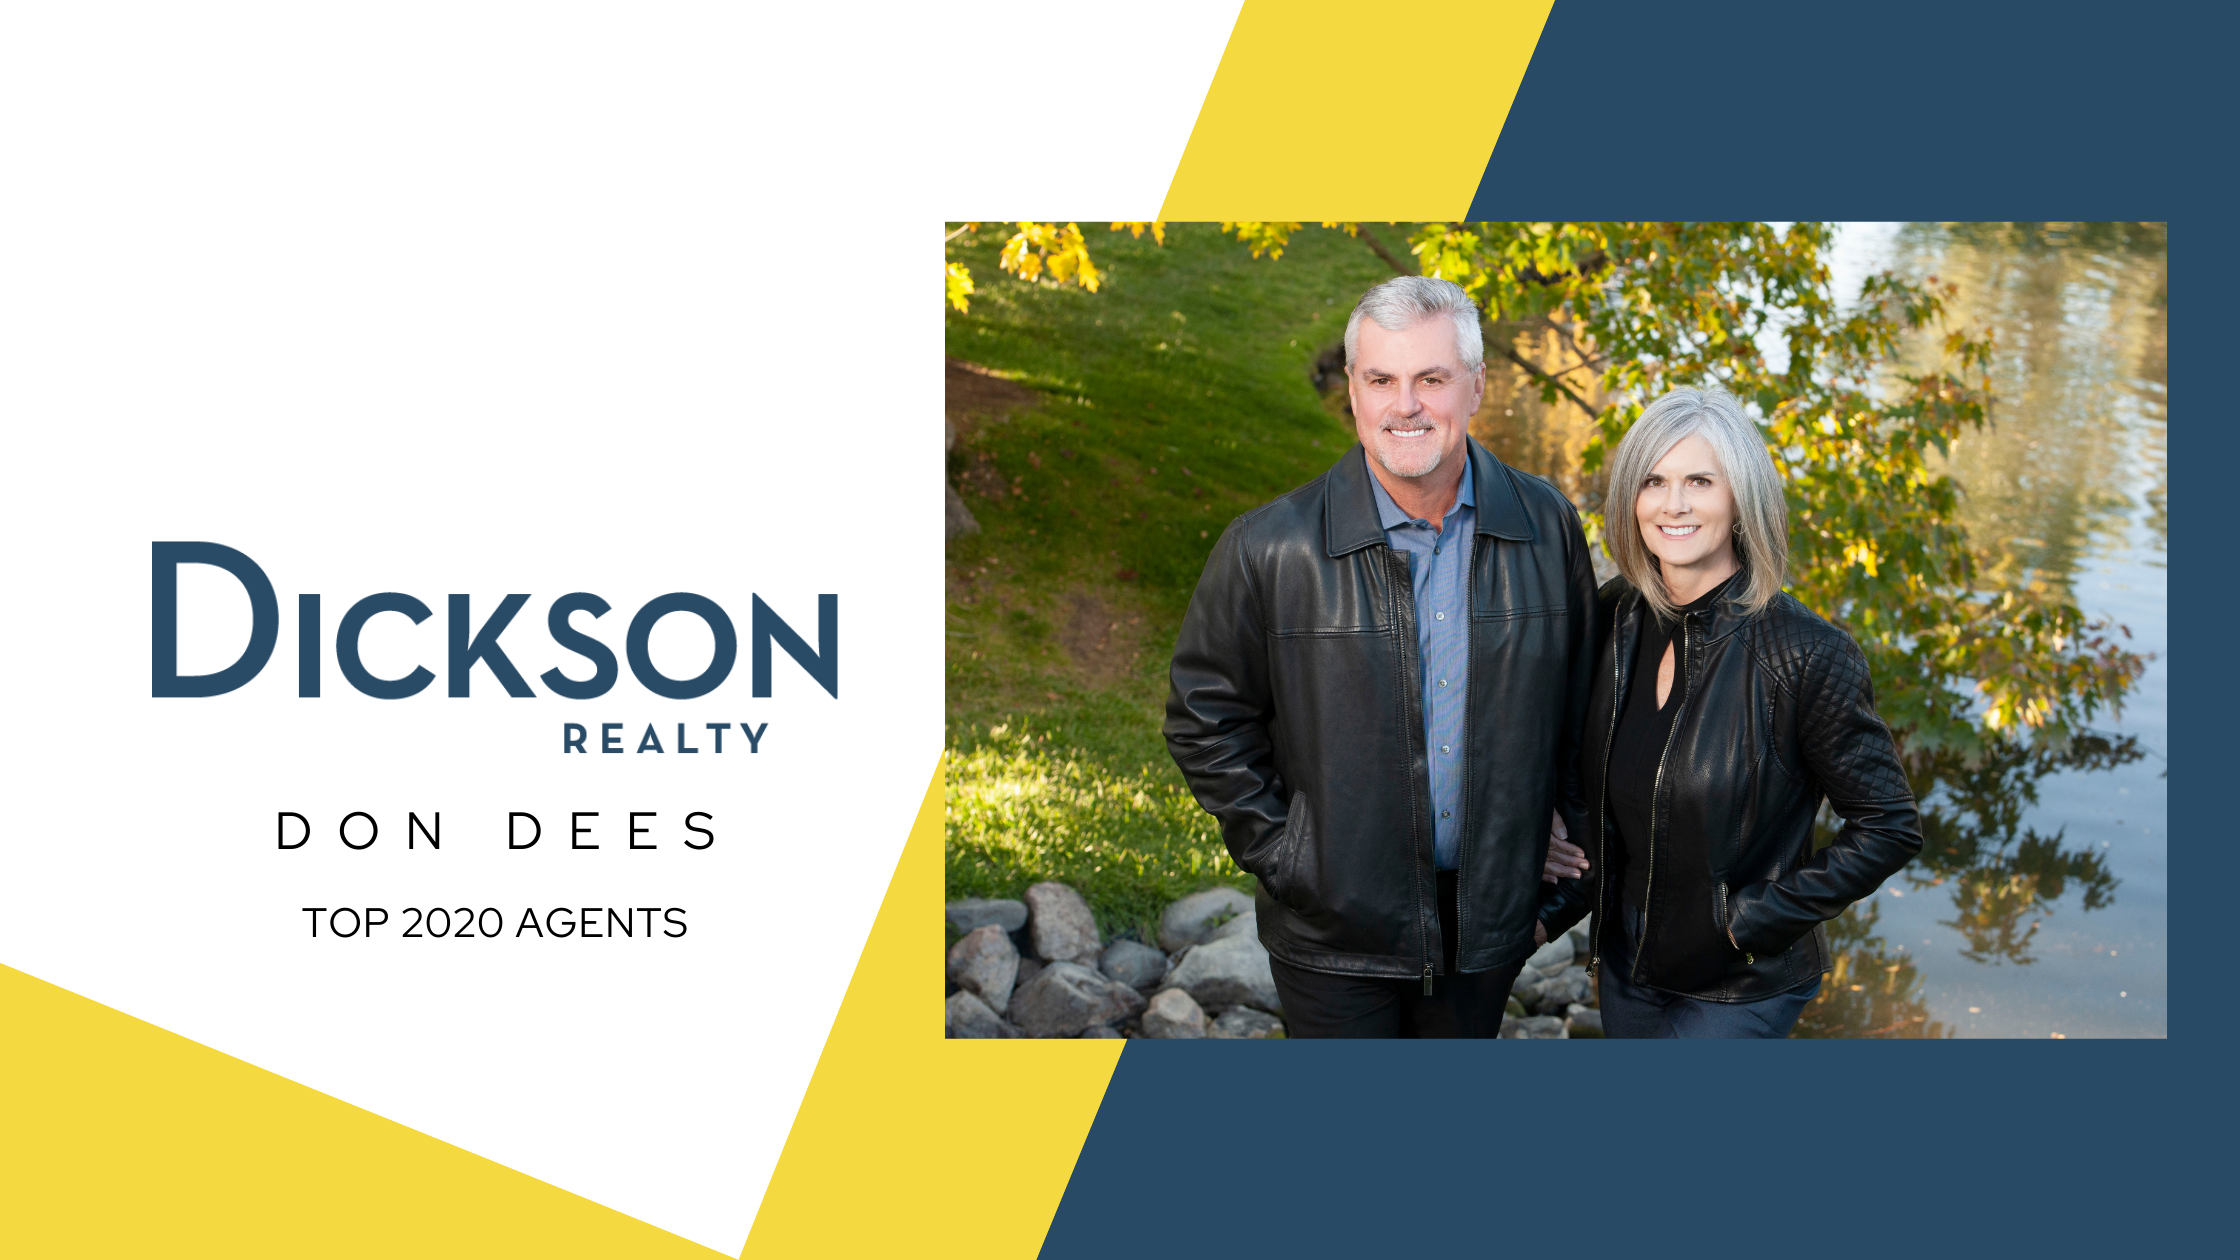 Dickson Top Agents - Don Dees